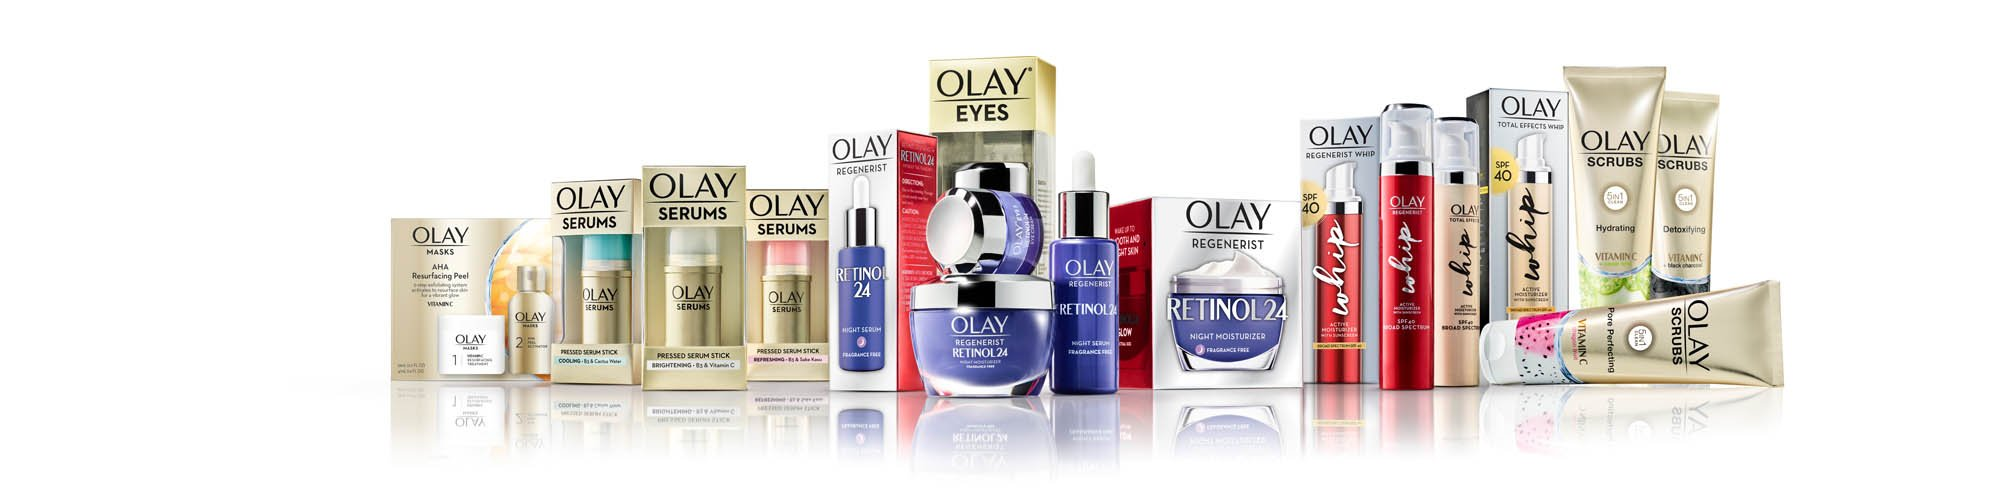 olay family on white with reflection - p&g product photography